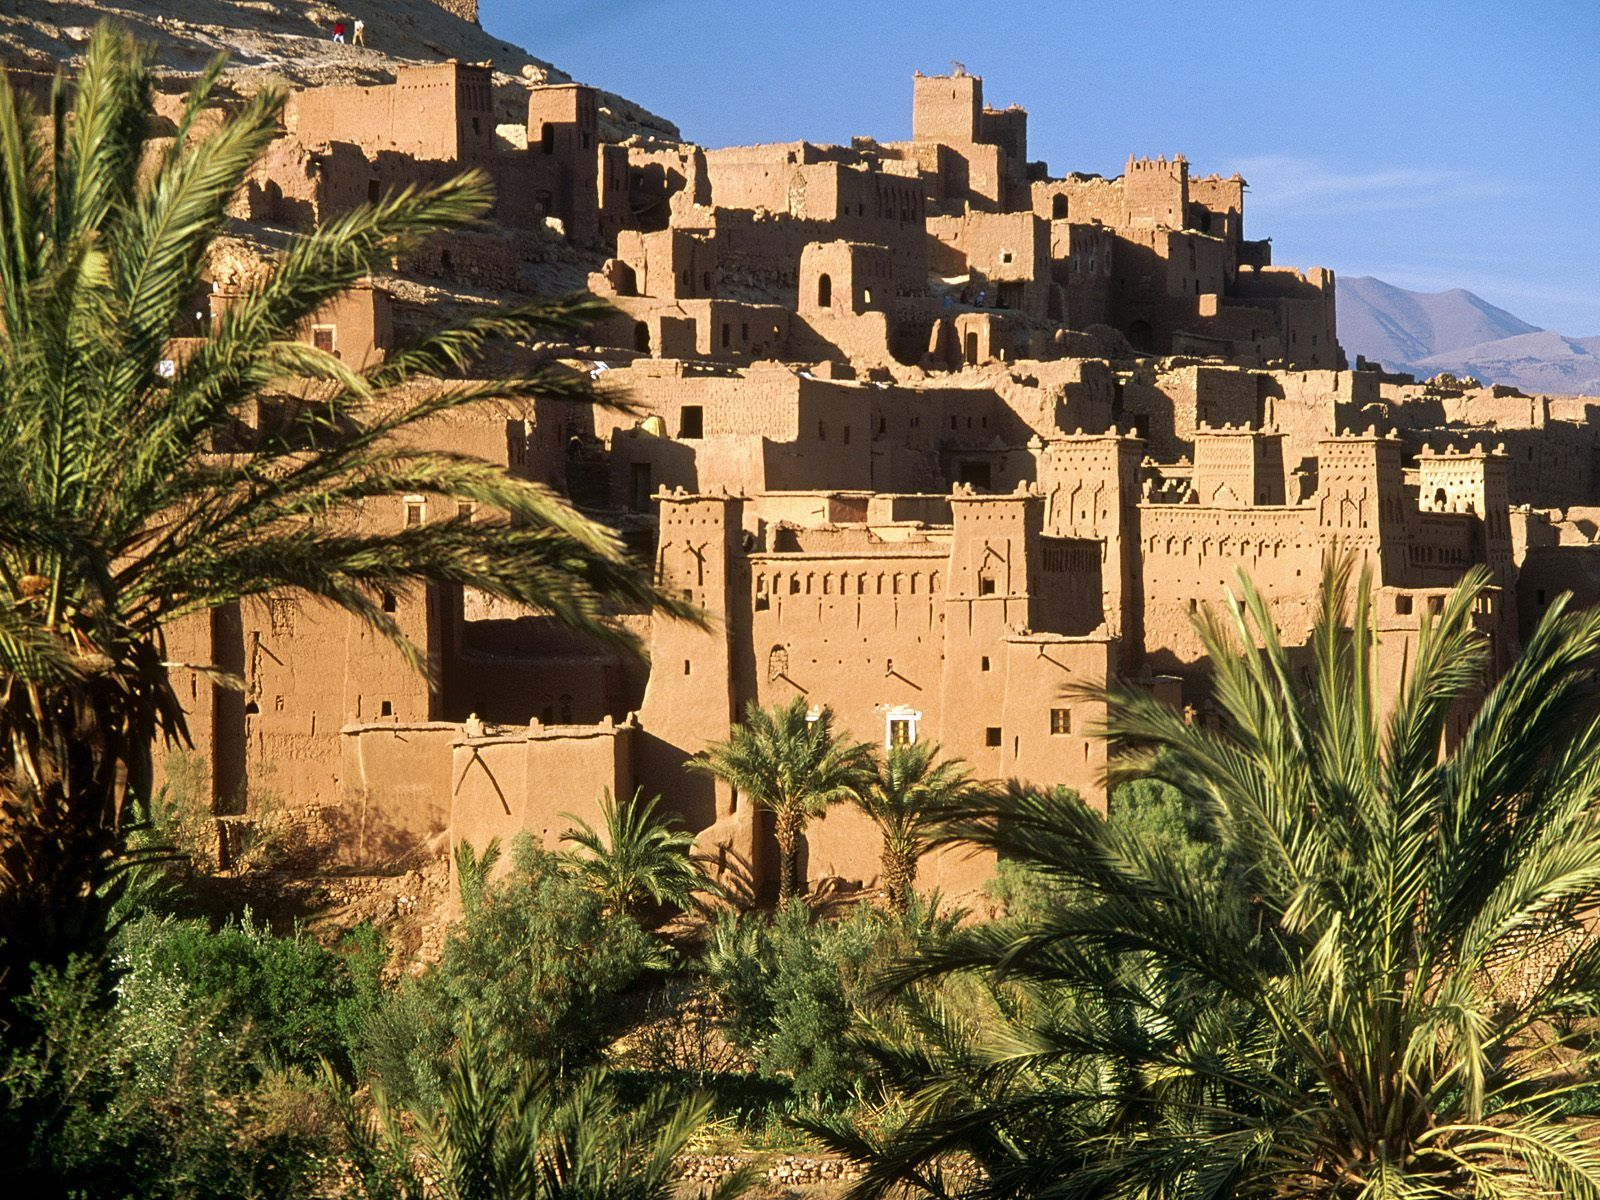 Ouarzazate Morocco  city photo : Published June 16, 2009 in Ouarzazate, Morocco | Full size is 1600 ...